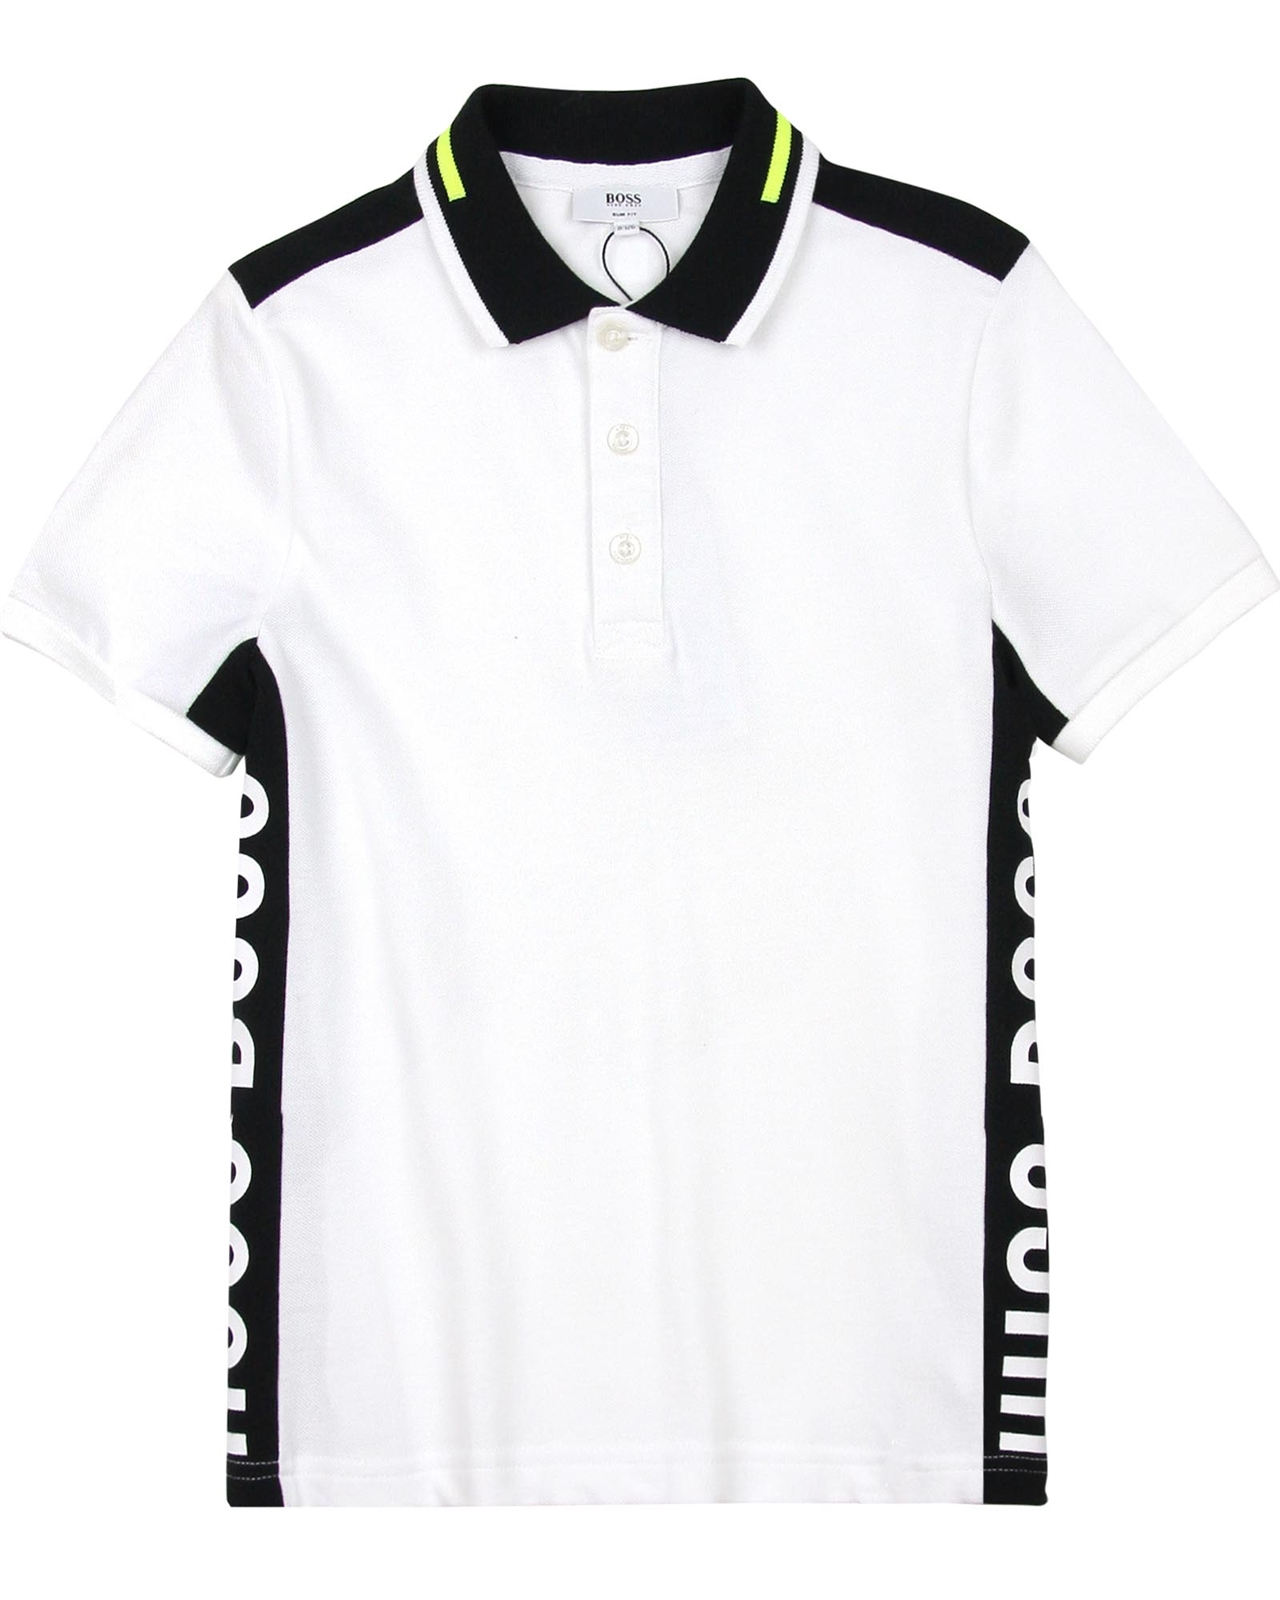 beea21964 BOSS Boys Polo Shirt with Side Inserts, Sizes 6-16